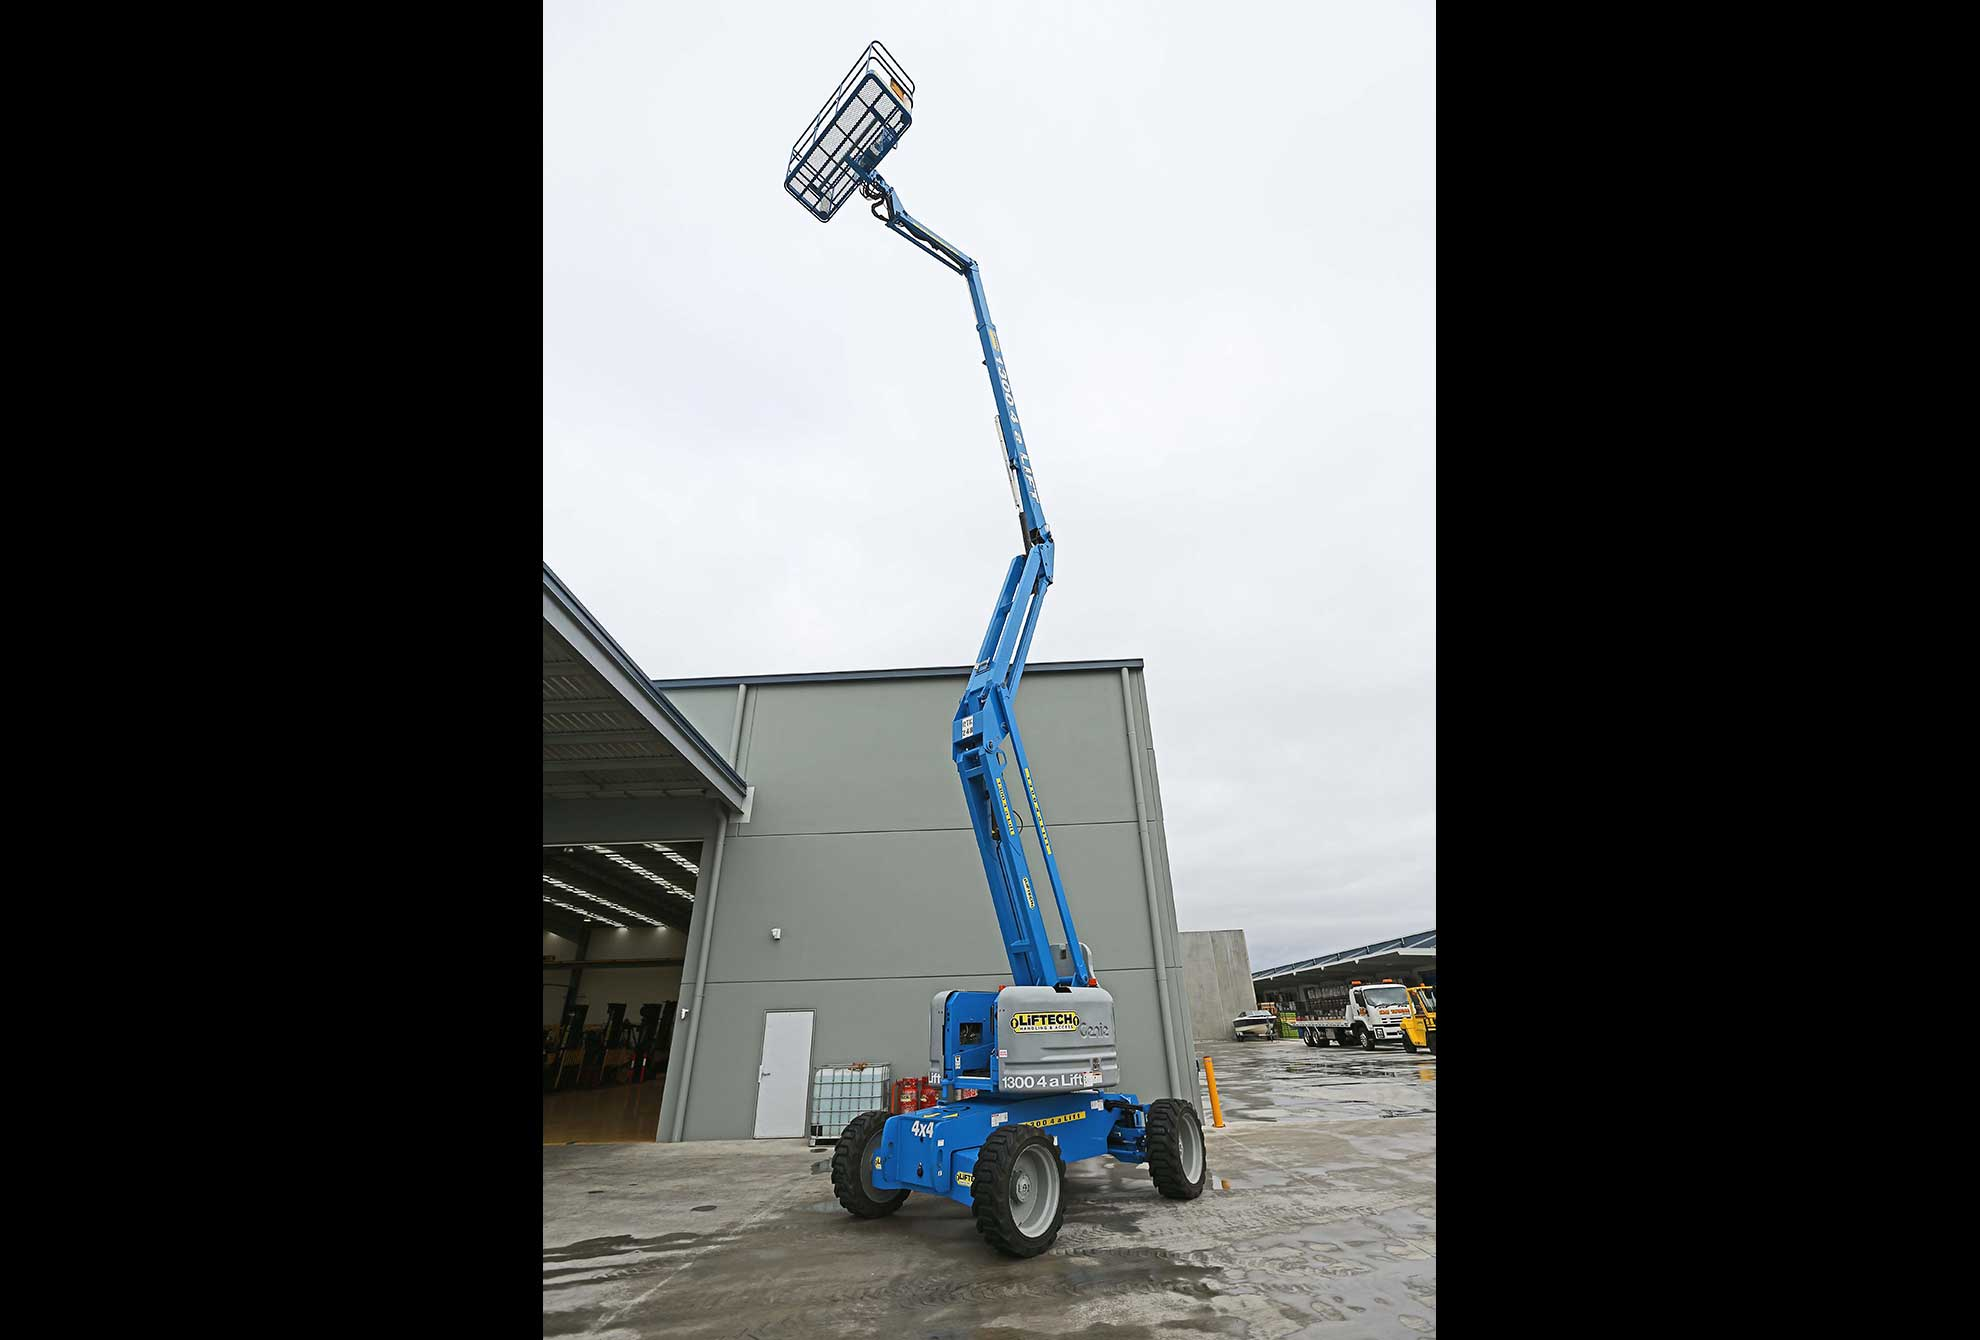 60/34 RTK Rough Terrain Knuckle Lift Rental